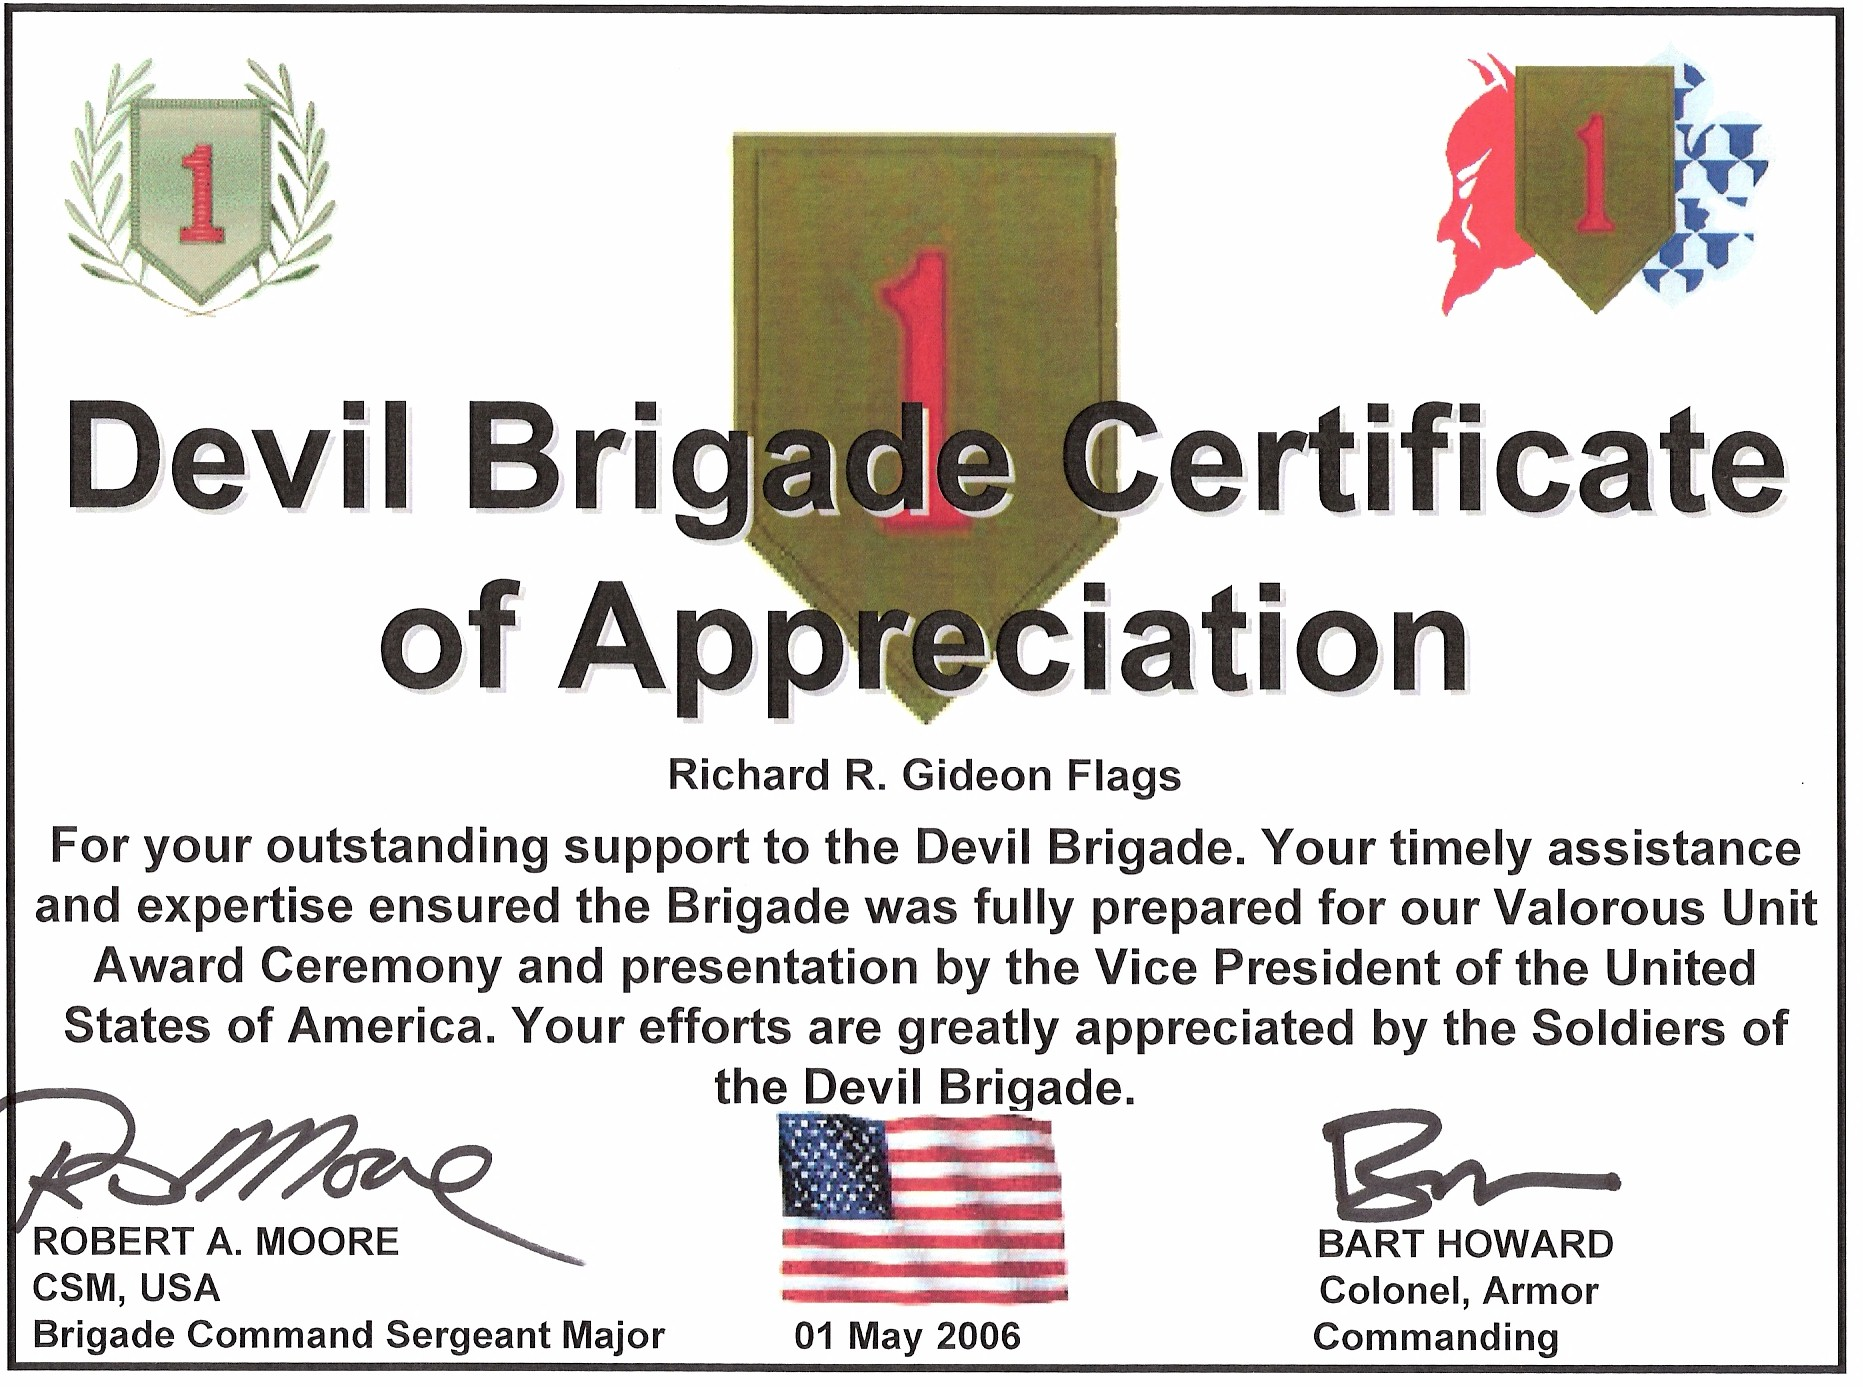 Examples of Certificate of Appreciation http://vyturelis.com/examples-of-certificates-of-appreciation.htm